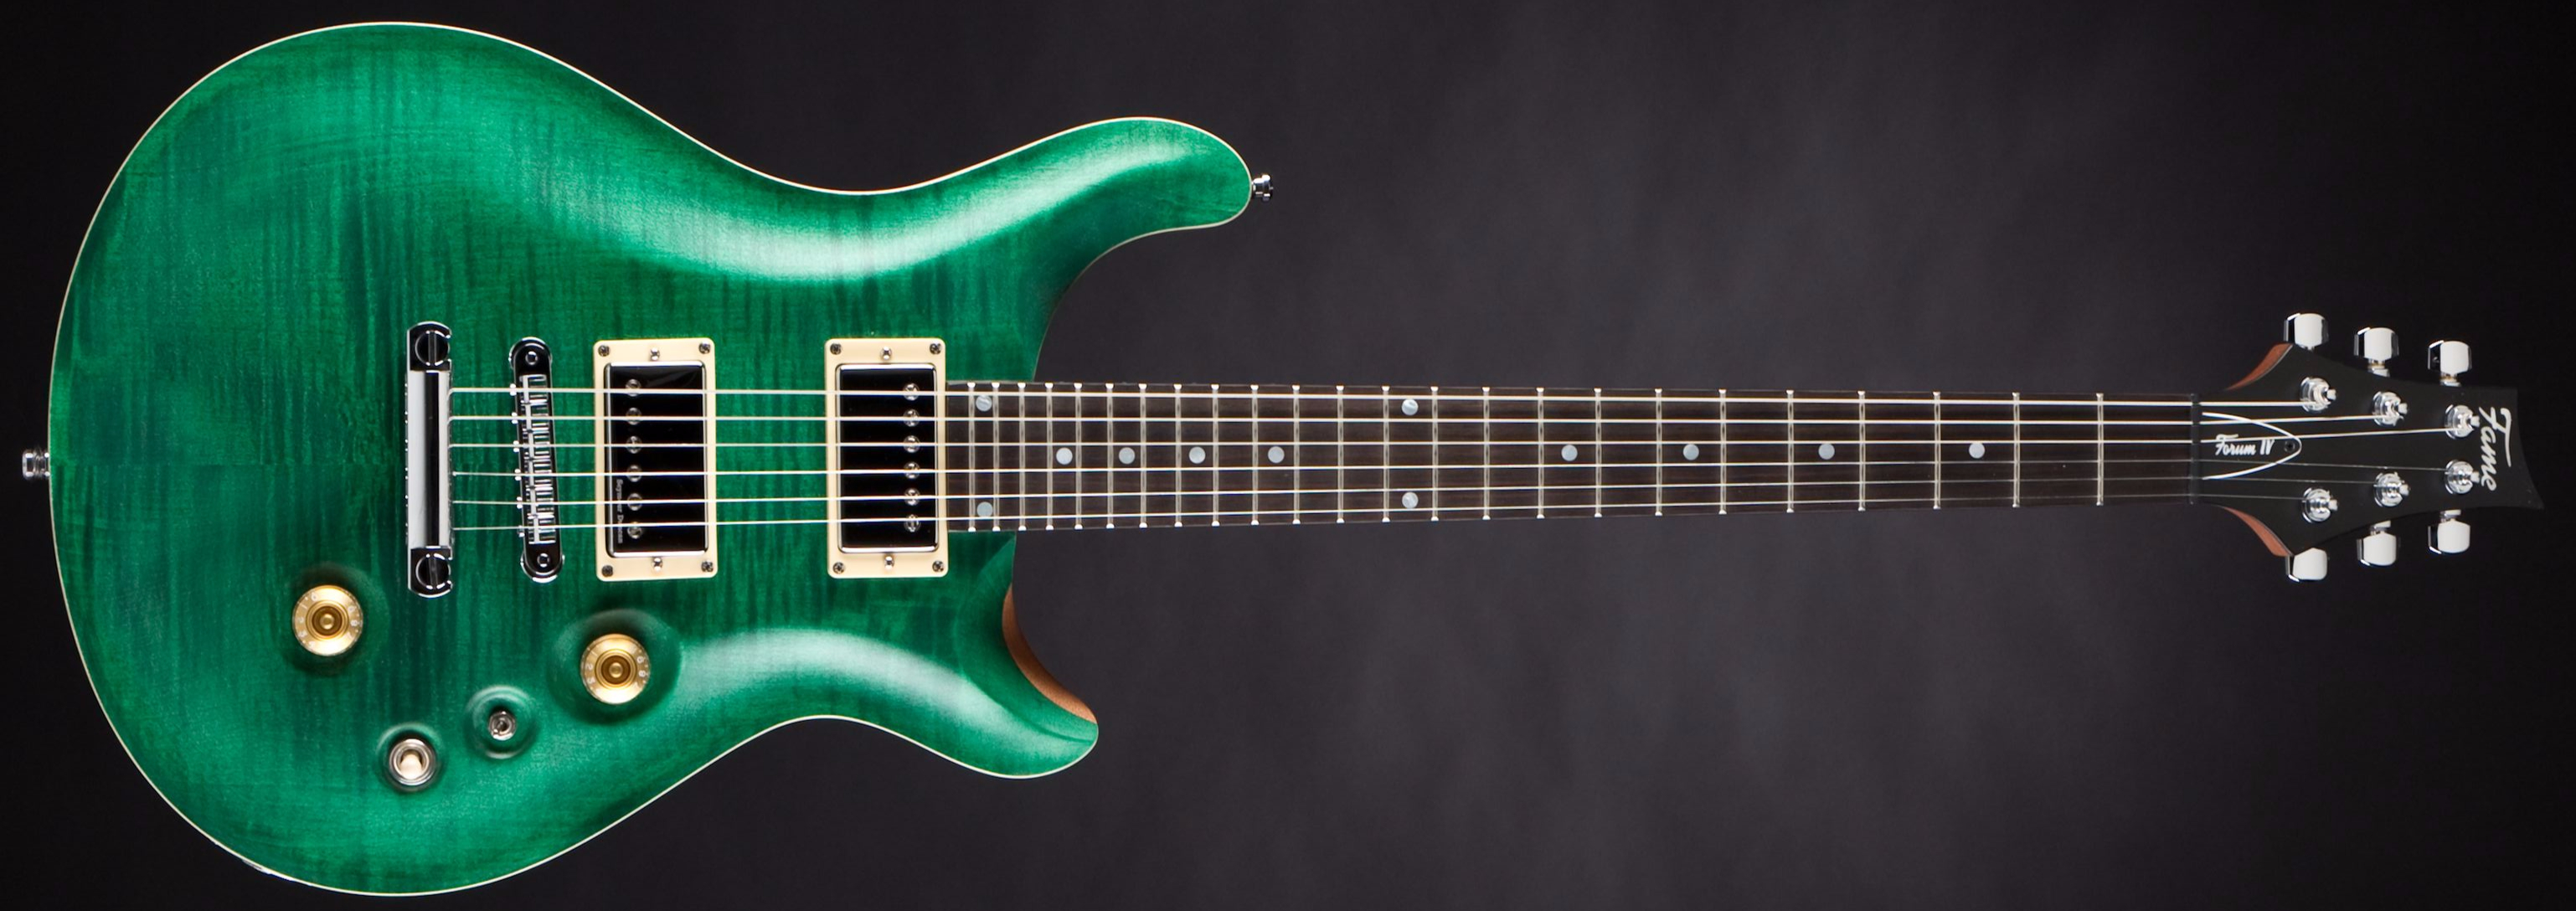 Fame Forum IV Classic Emerald Green Satin Front